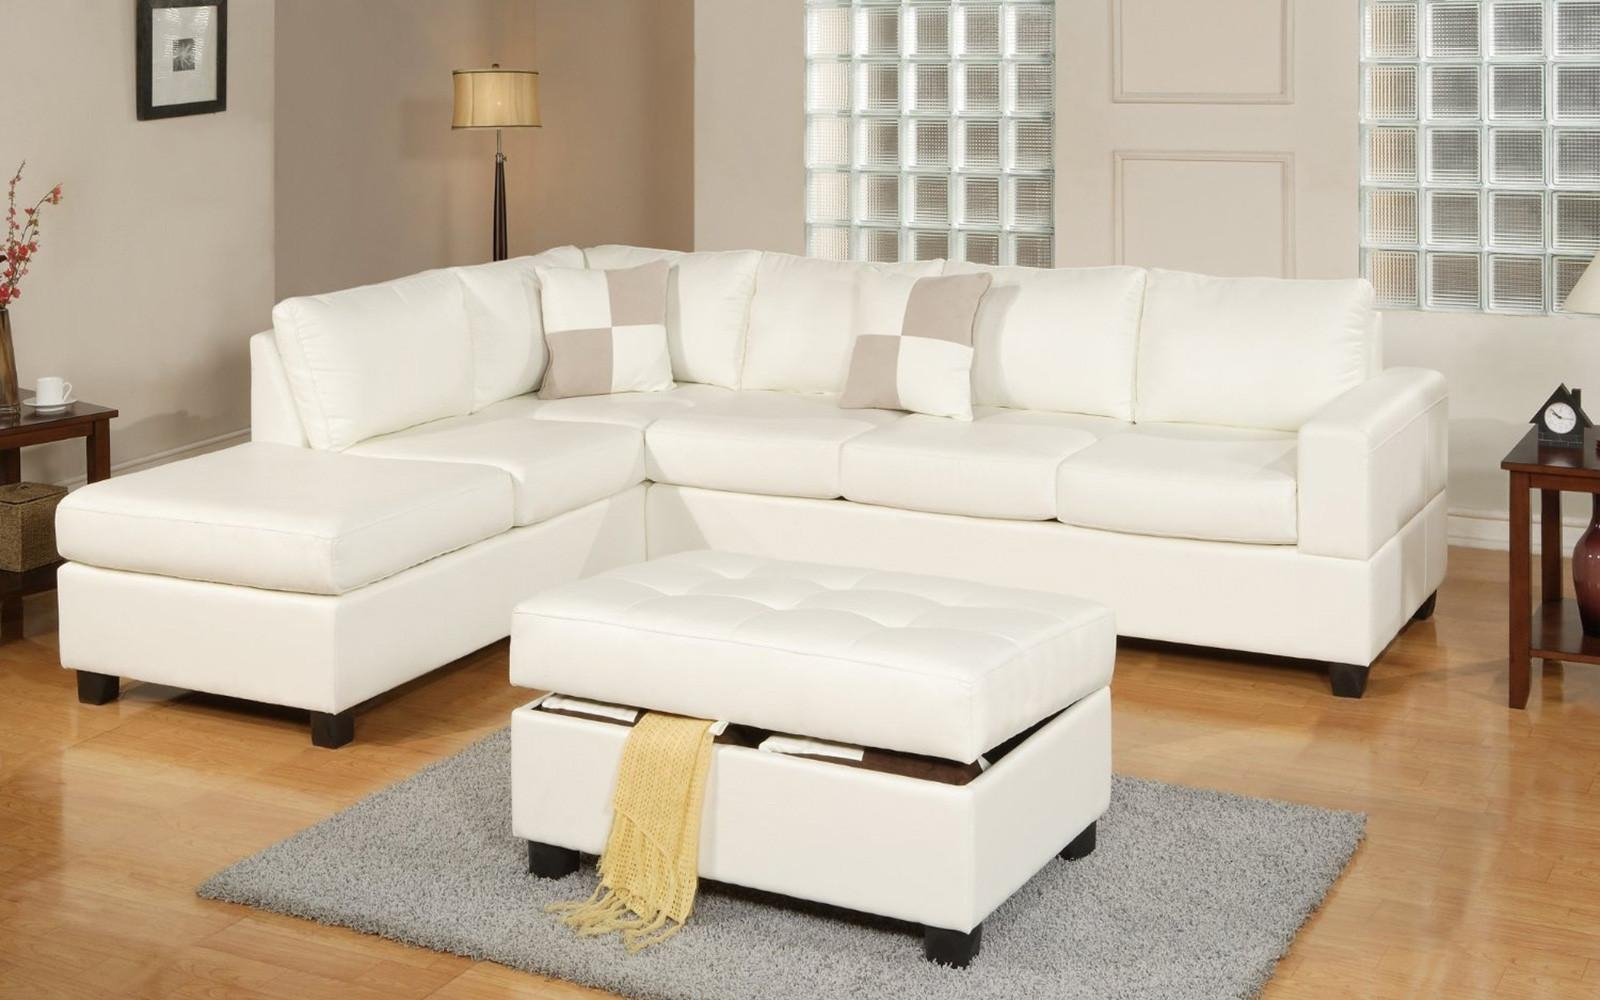 3 Piece Modern Reversible Tufted Bonded Leather Sectional Sofa With White Sectional Sofa For Sale (Image 1 of 21)